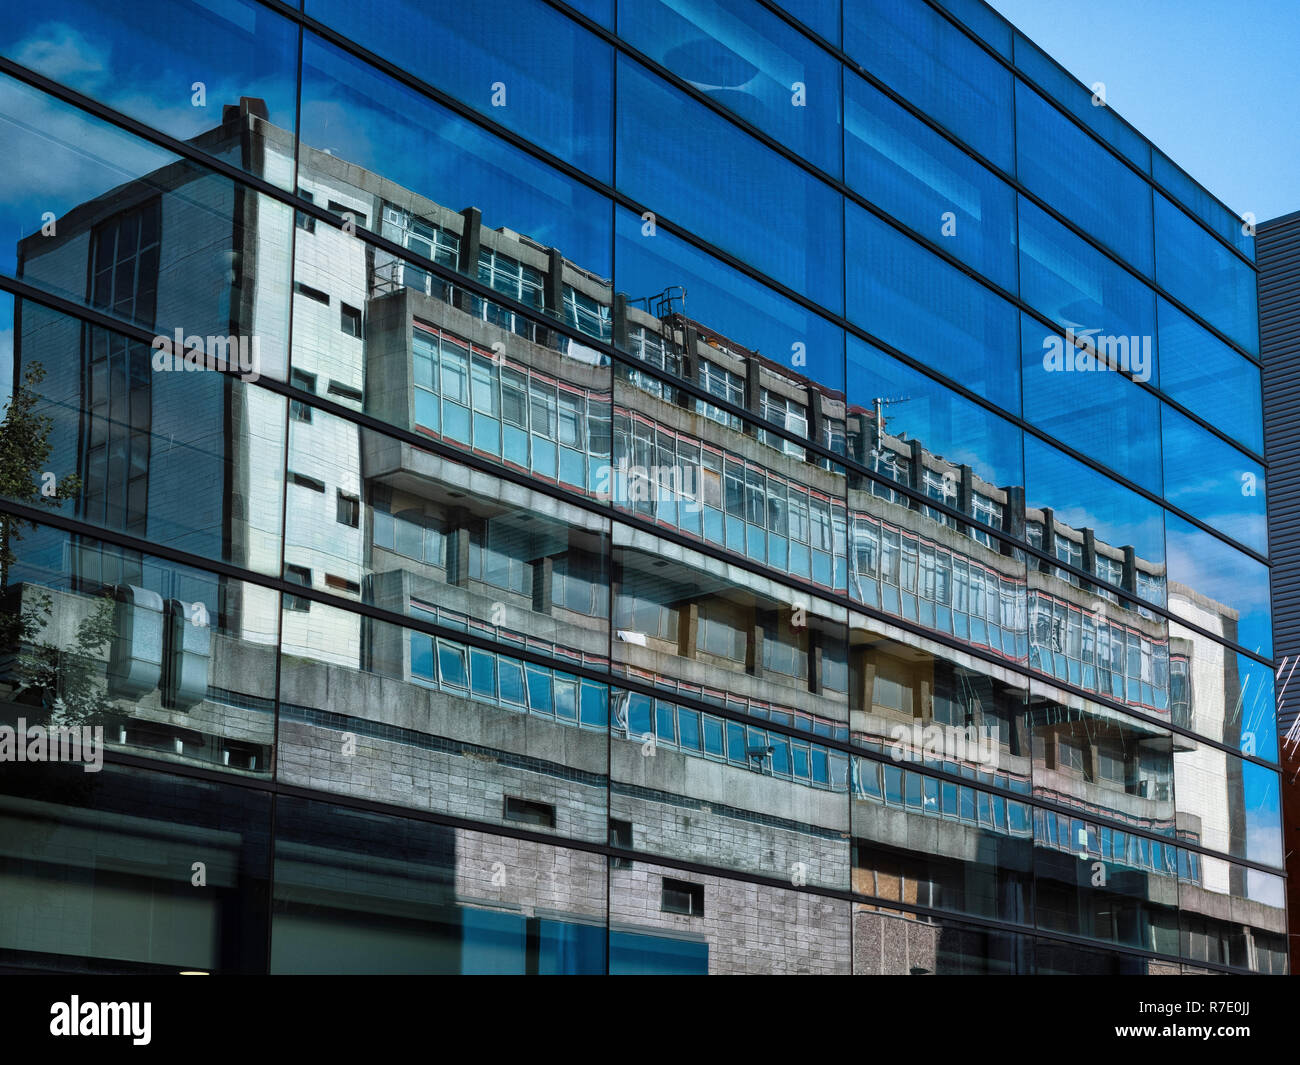 Reflection of the 1960s London Hospital Dental Institute in the modern glass of the Barts & The London School of Medicine and Dentistry in Whitechapel - Stock Image